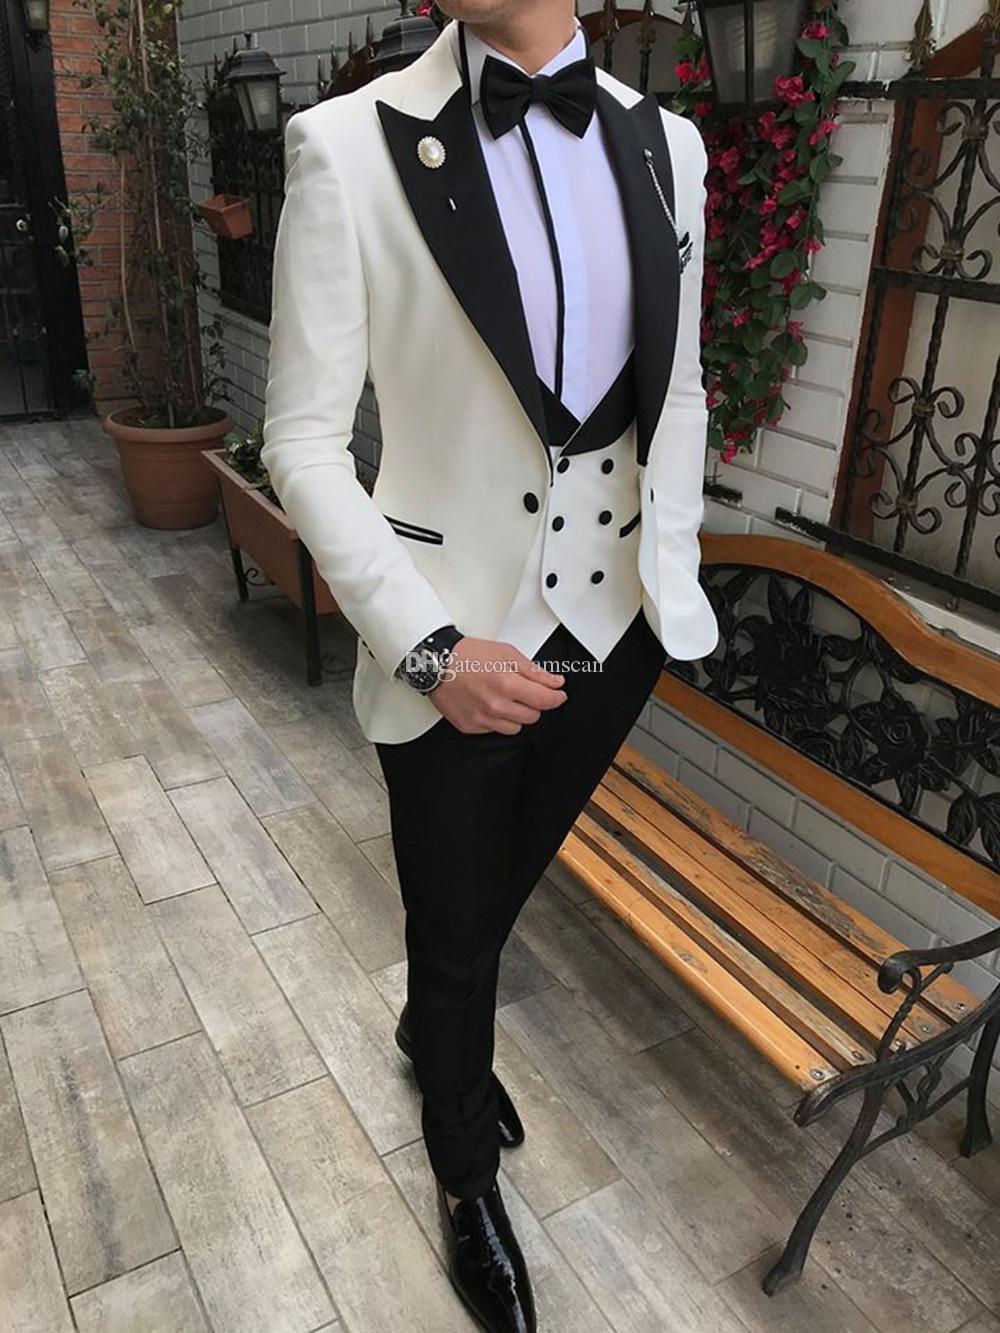 Tute 3 Pezzi Slim Fit Affari abiti sposo Champagne nobile Grigio Bianco smoking per Formale abito da sposa Dinner Party (Blazer + Pants + vest)